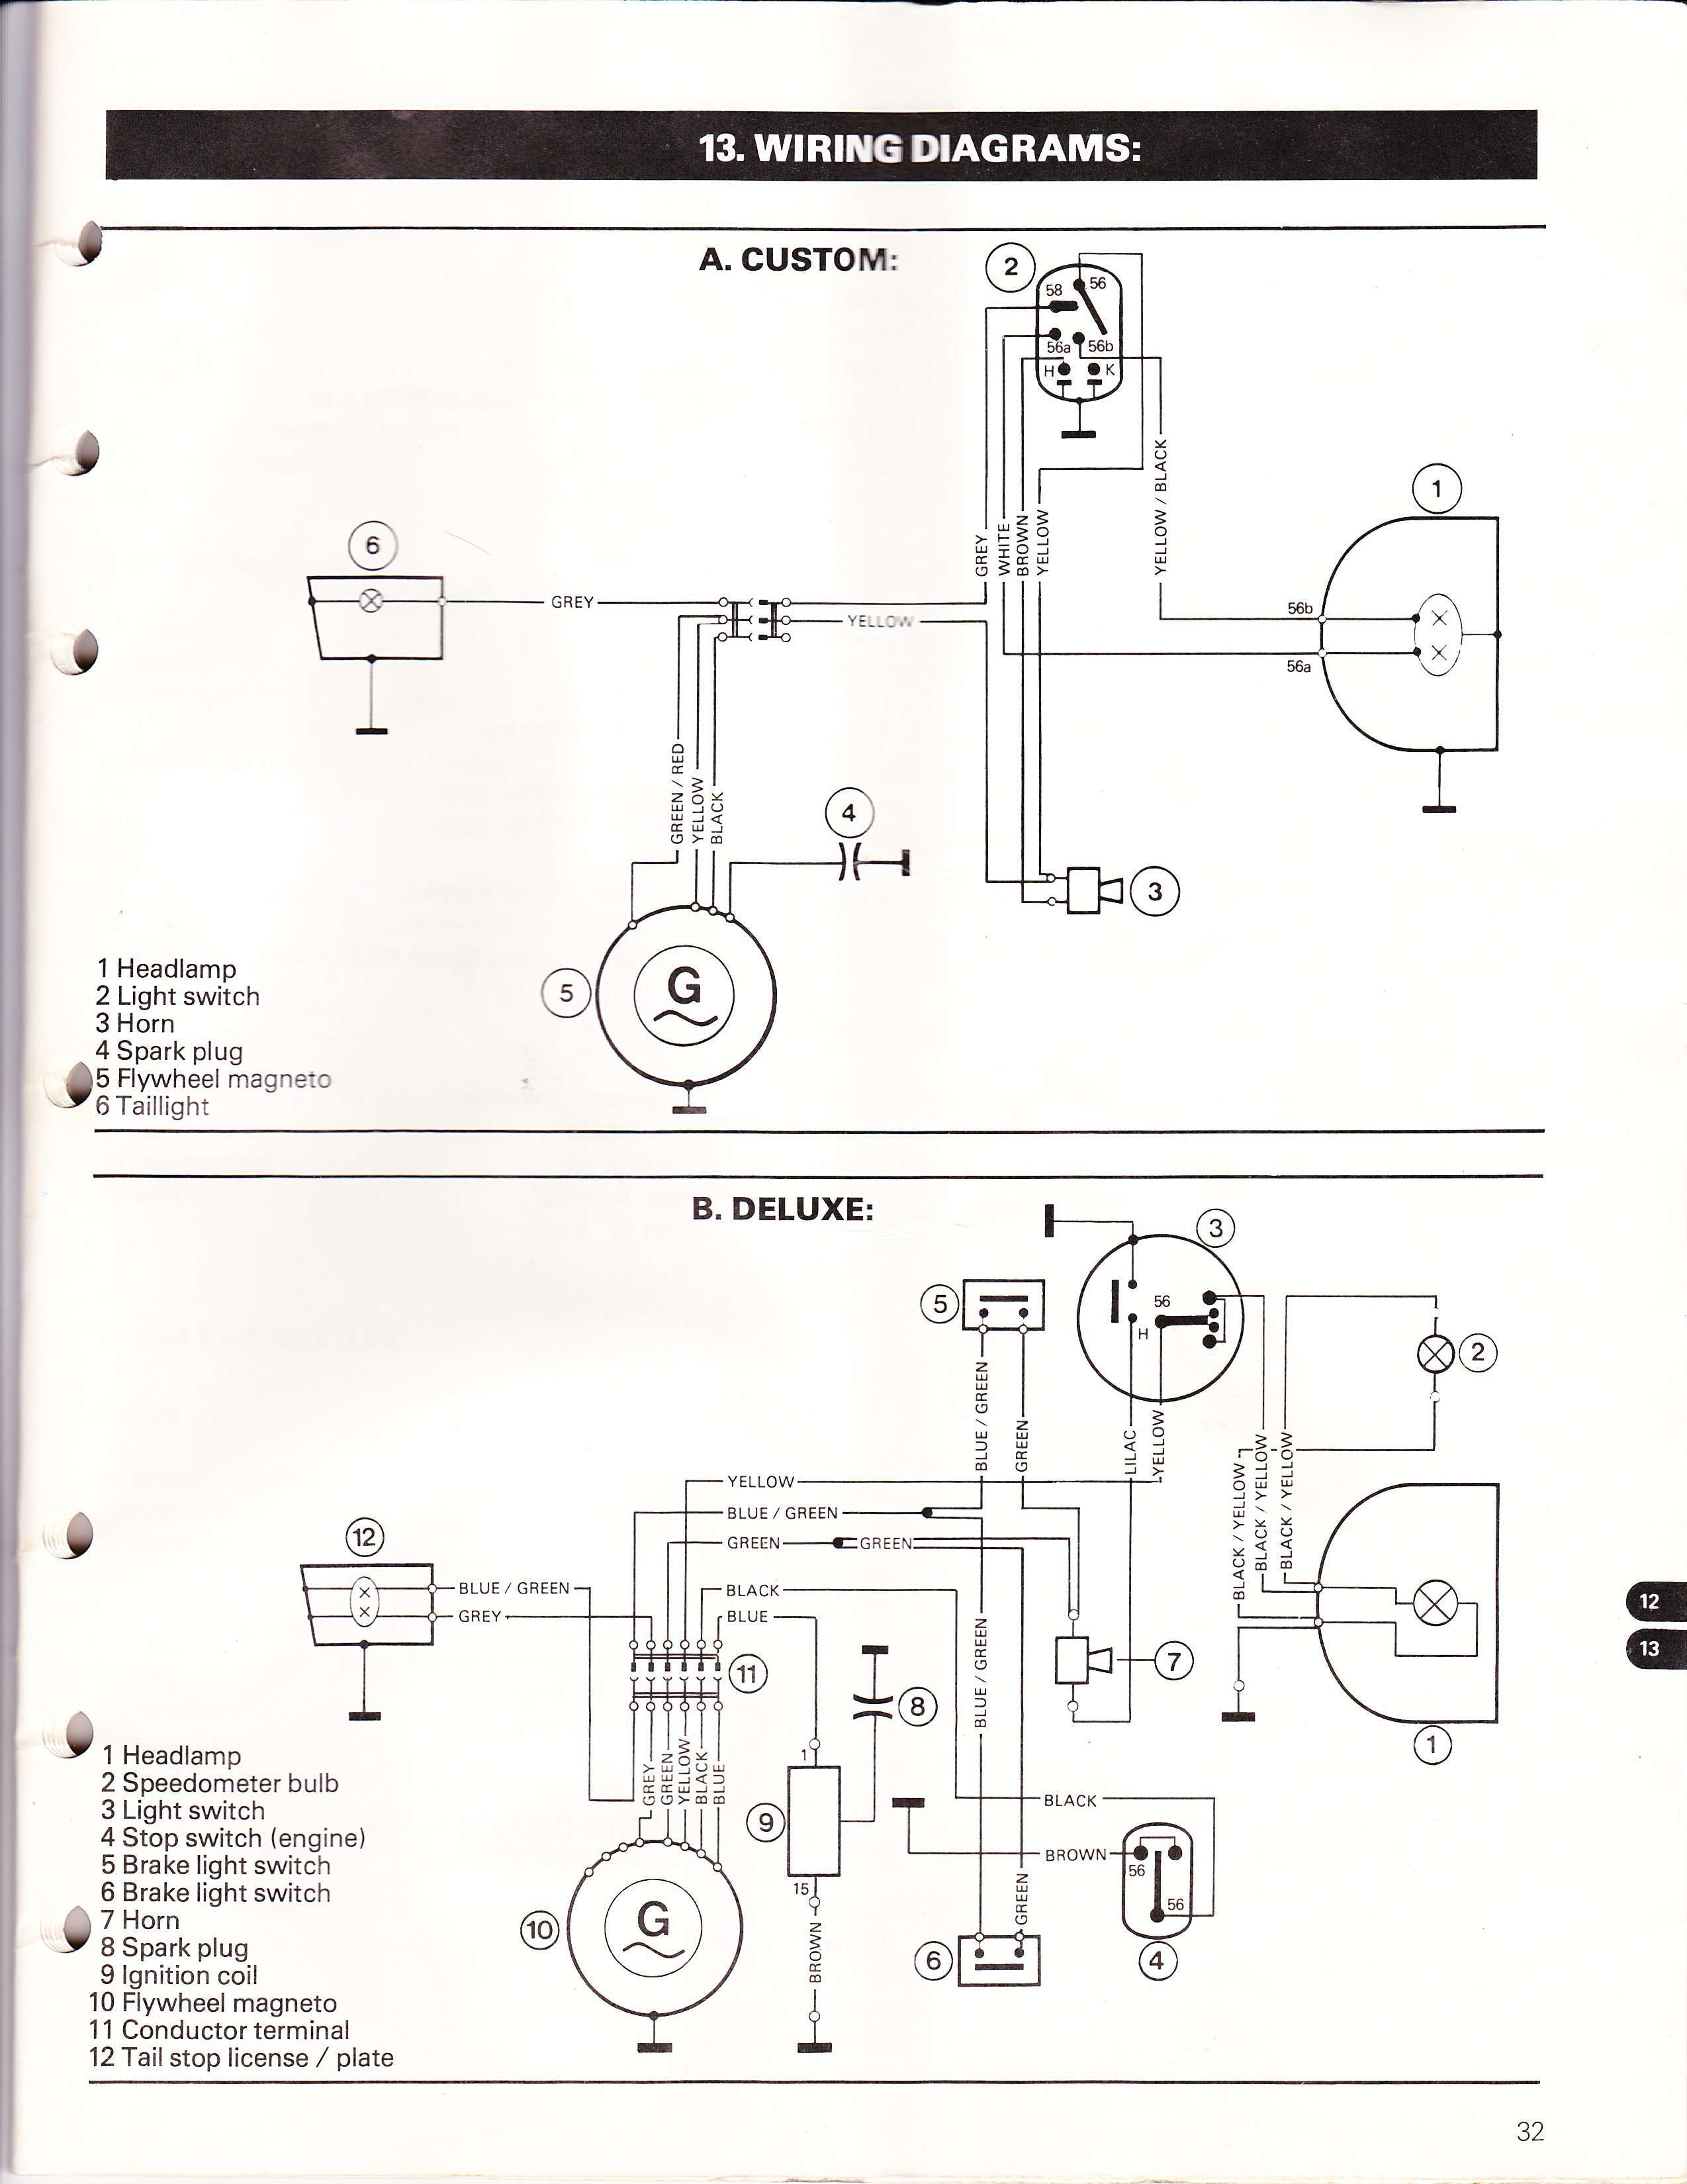 french grimes magneto wiring schematic